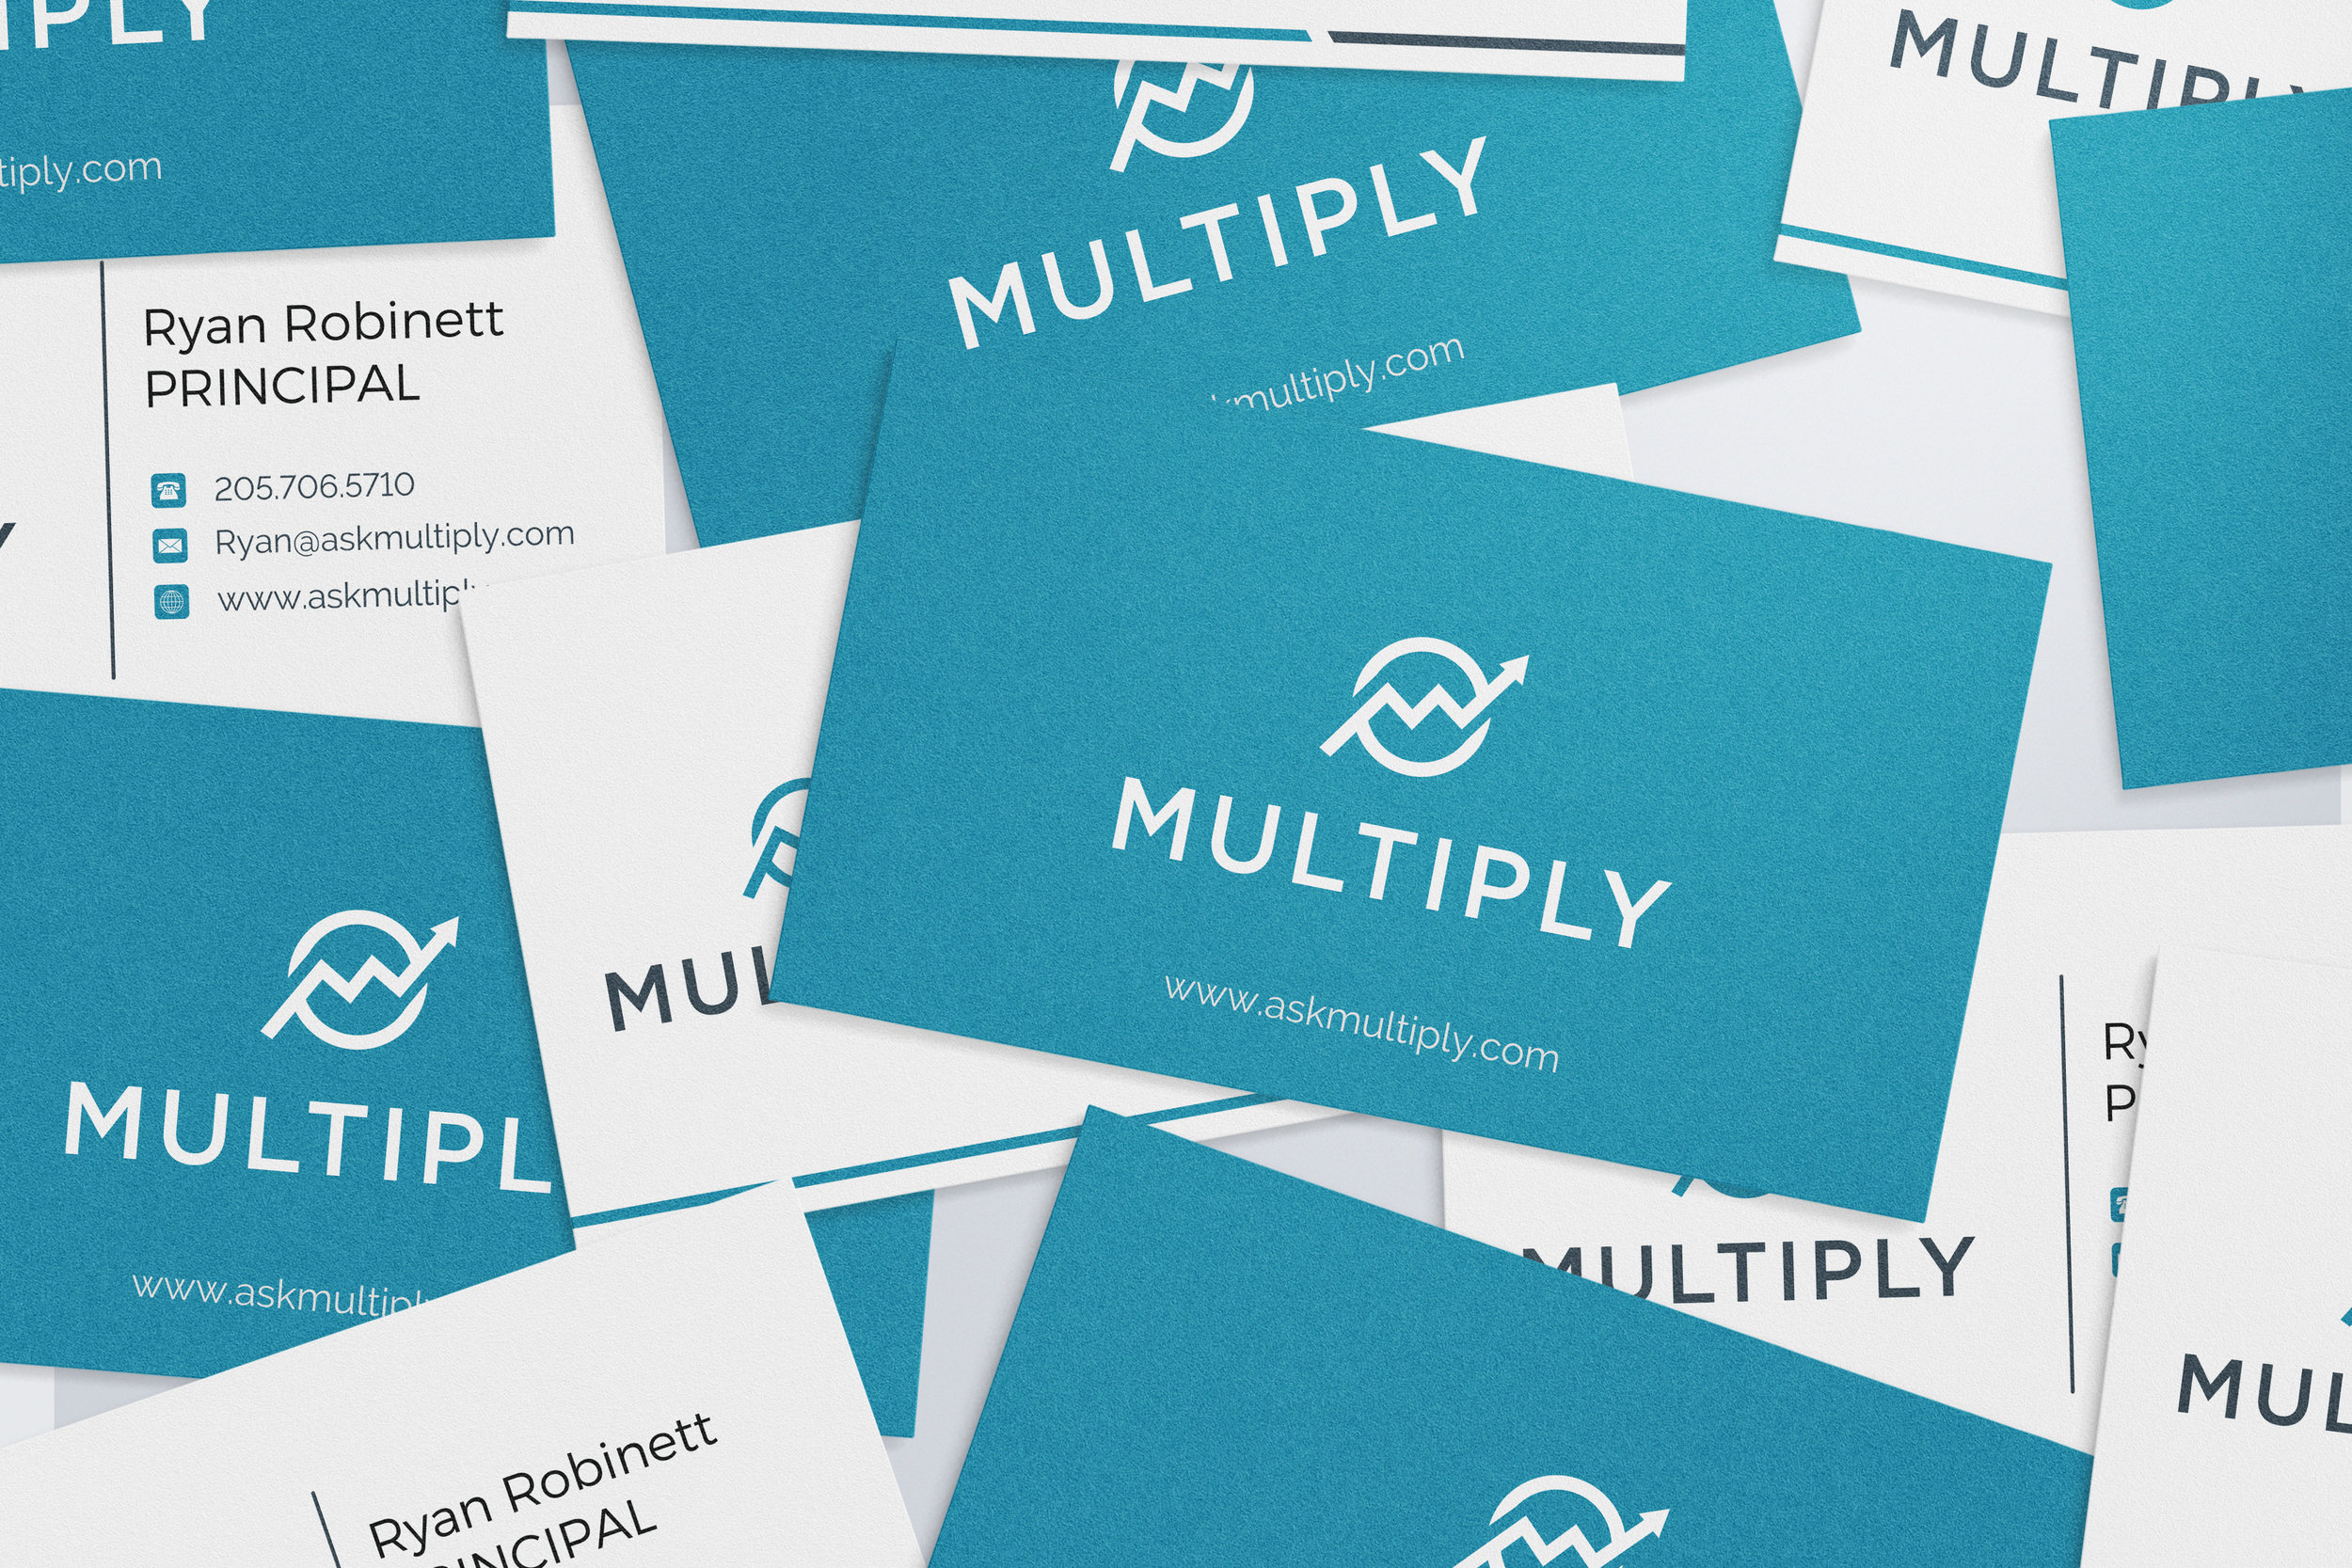 Our Approach - Real world results tell us that sales teams must be aligned, prepared and managed to be effective and relevant.Multiply is founded on results, and our approach will help your company see increased revenue through a more productive sales team.